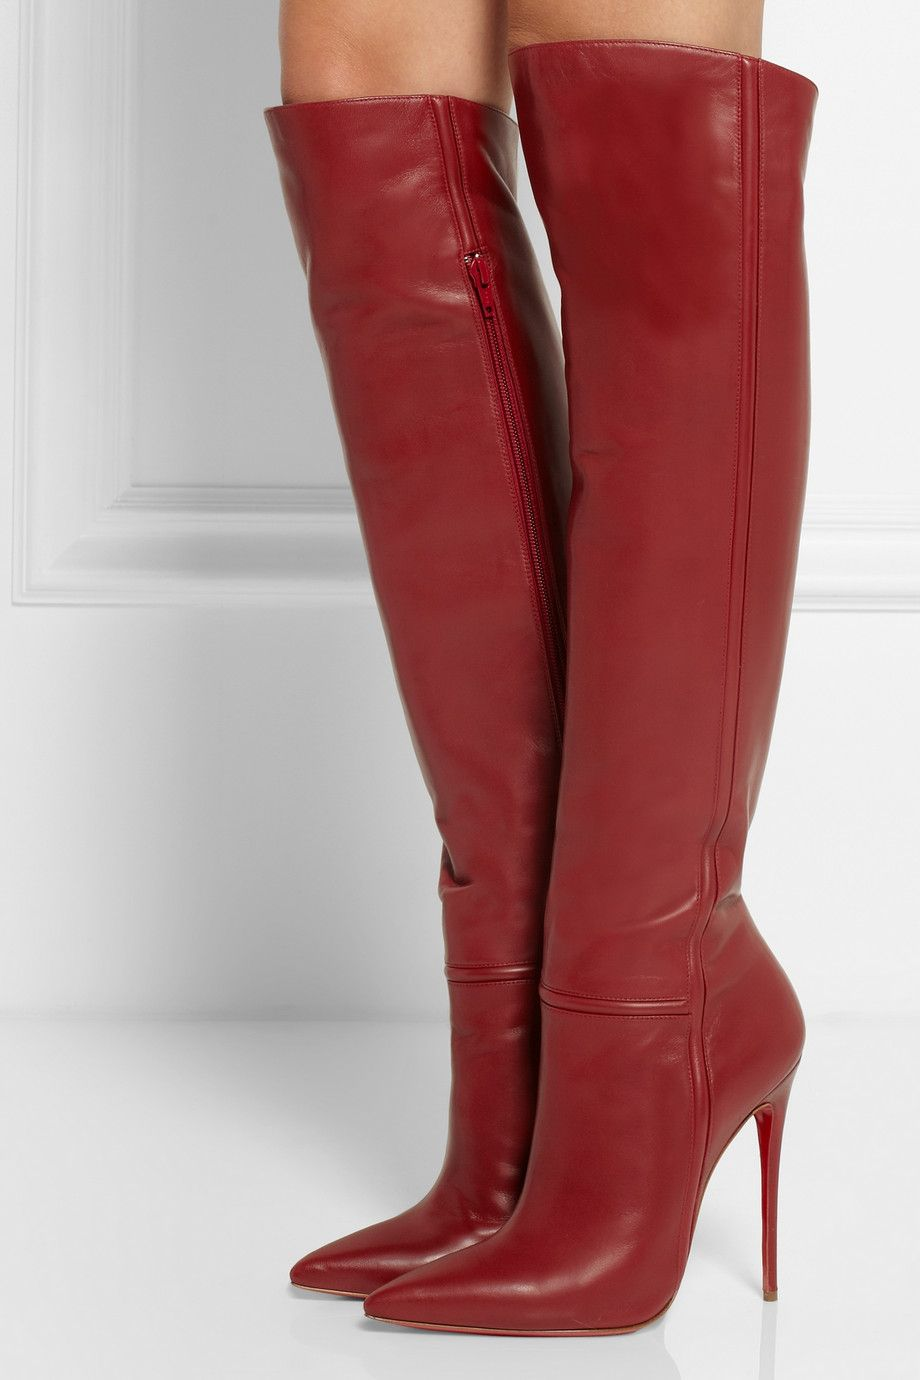 These boots are fabulous!!!!! Christian Louboutin  f4891444cc